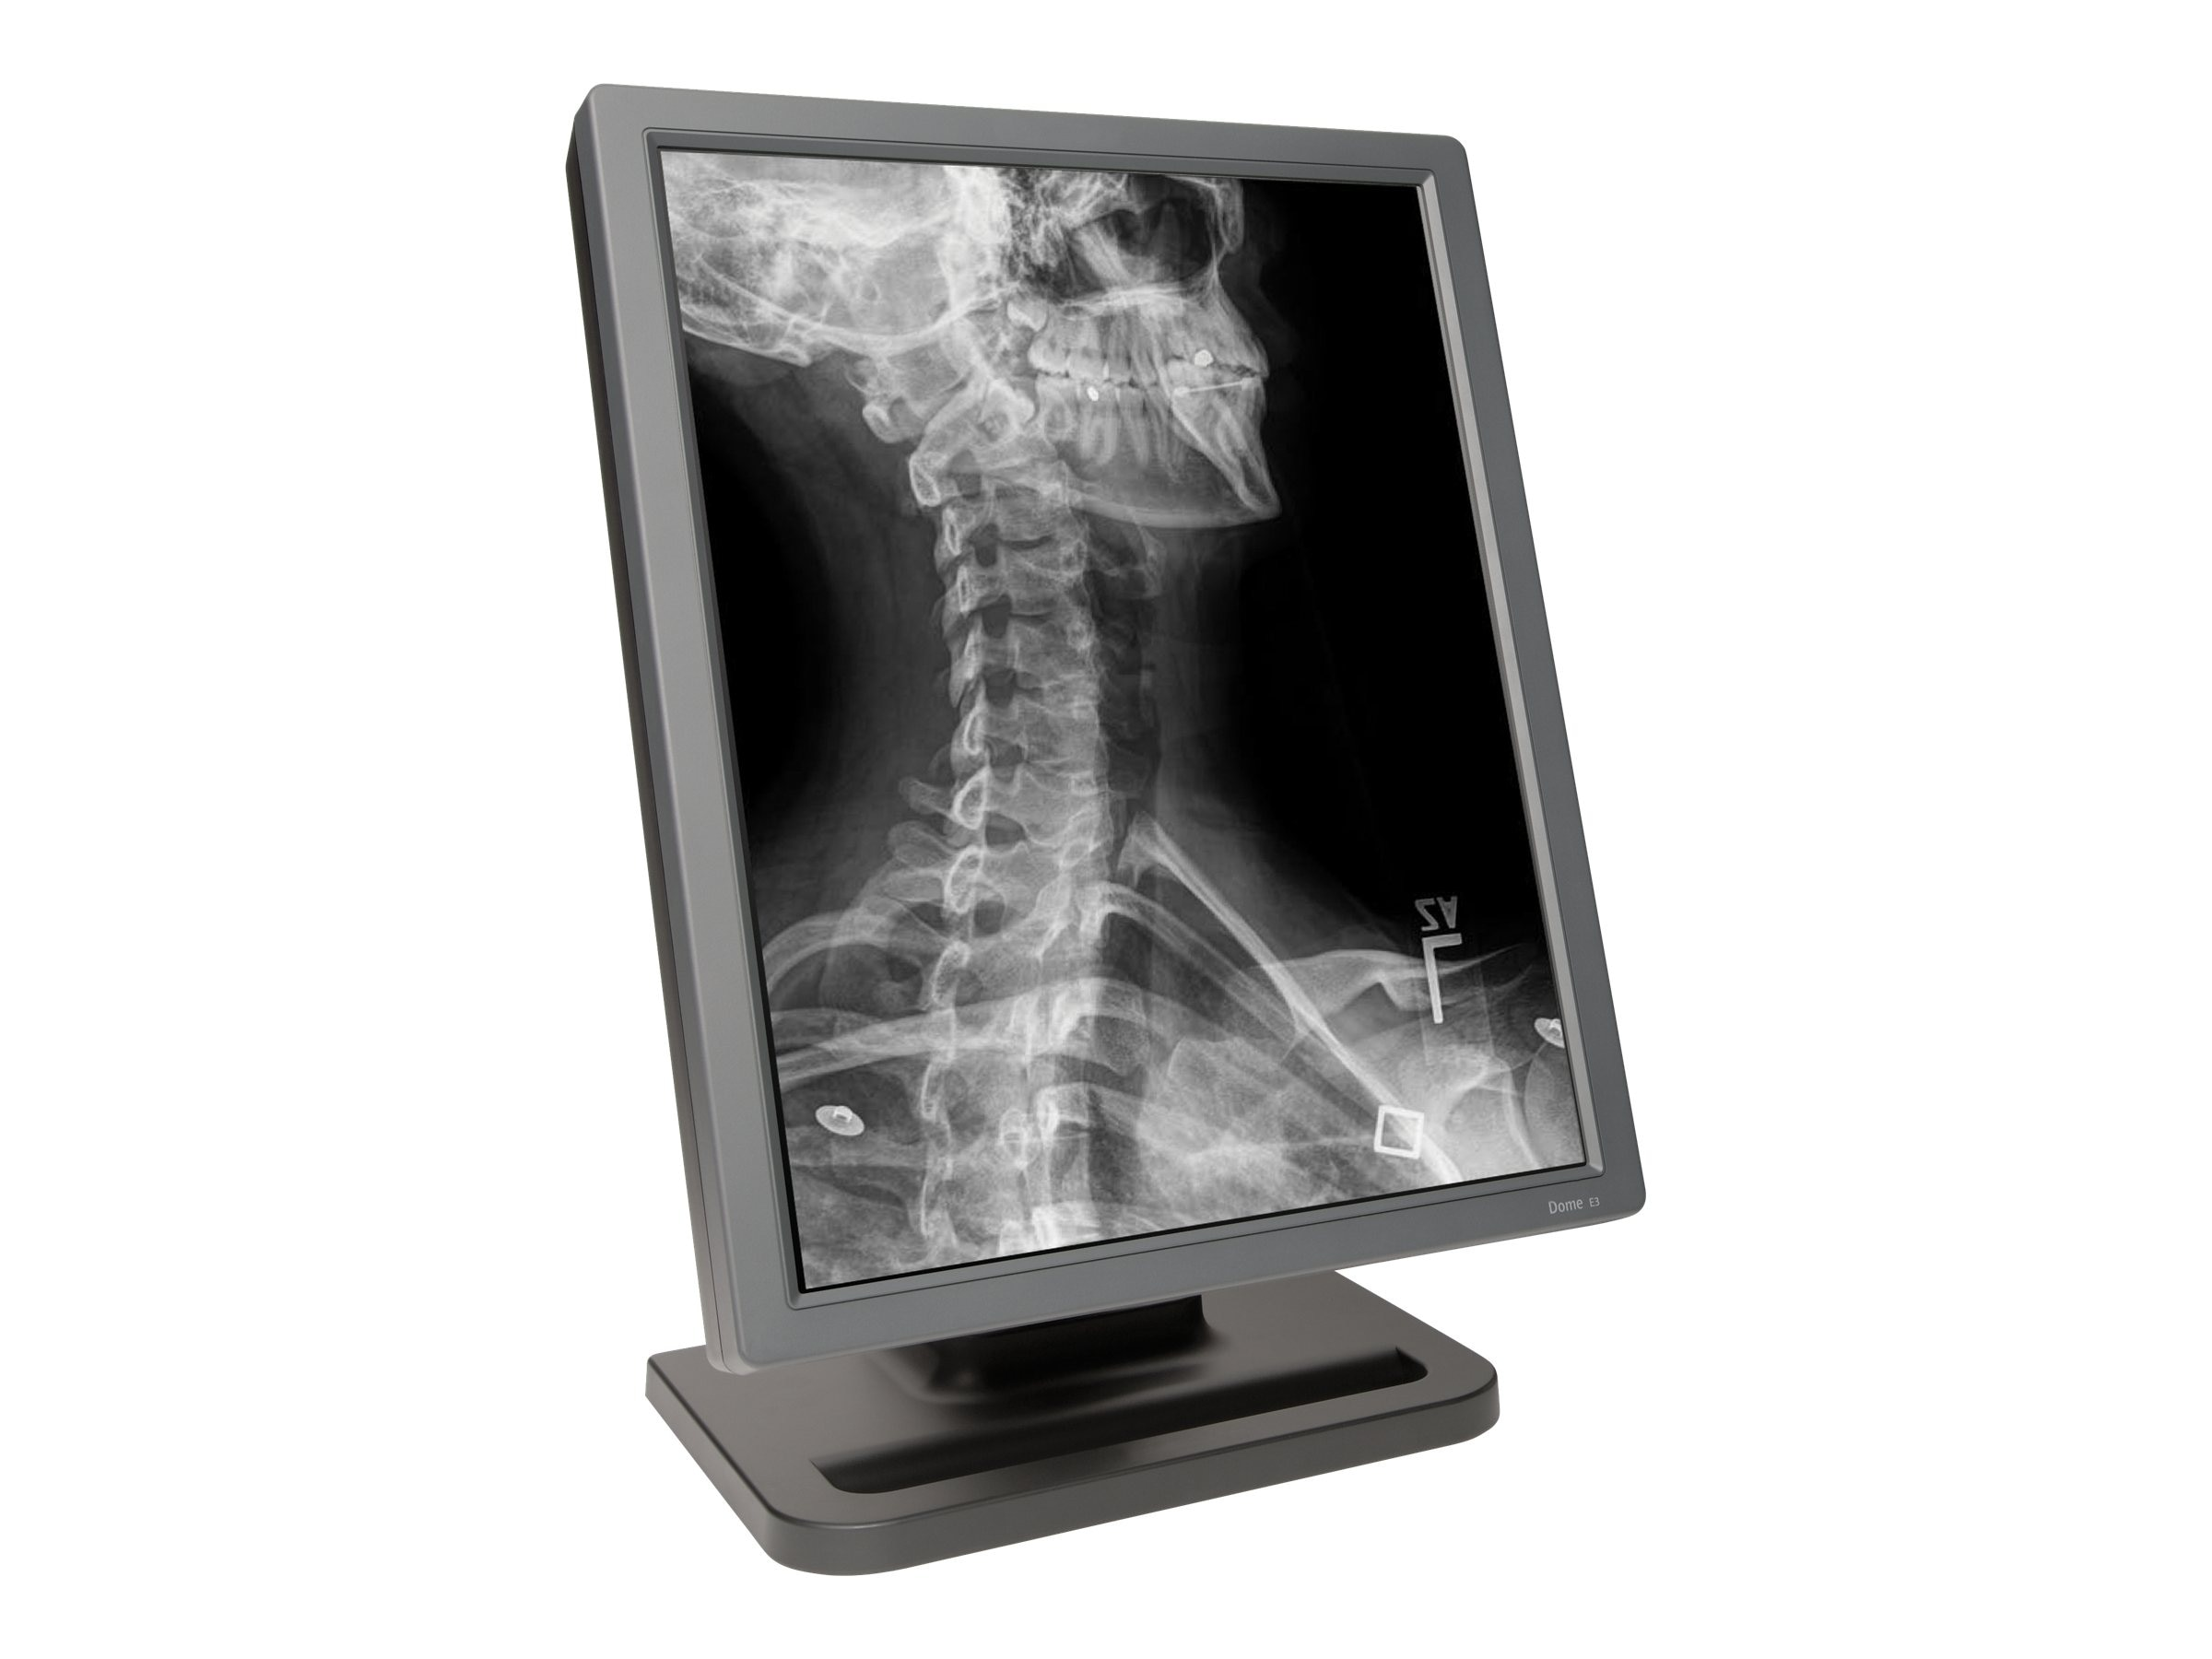 NDS Surgical Imaging 997-5713-00-1NN Image 1